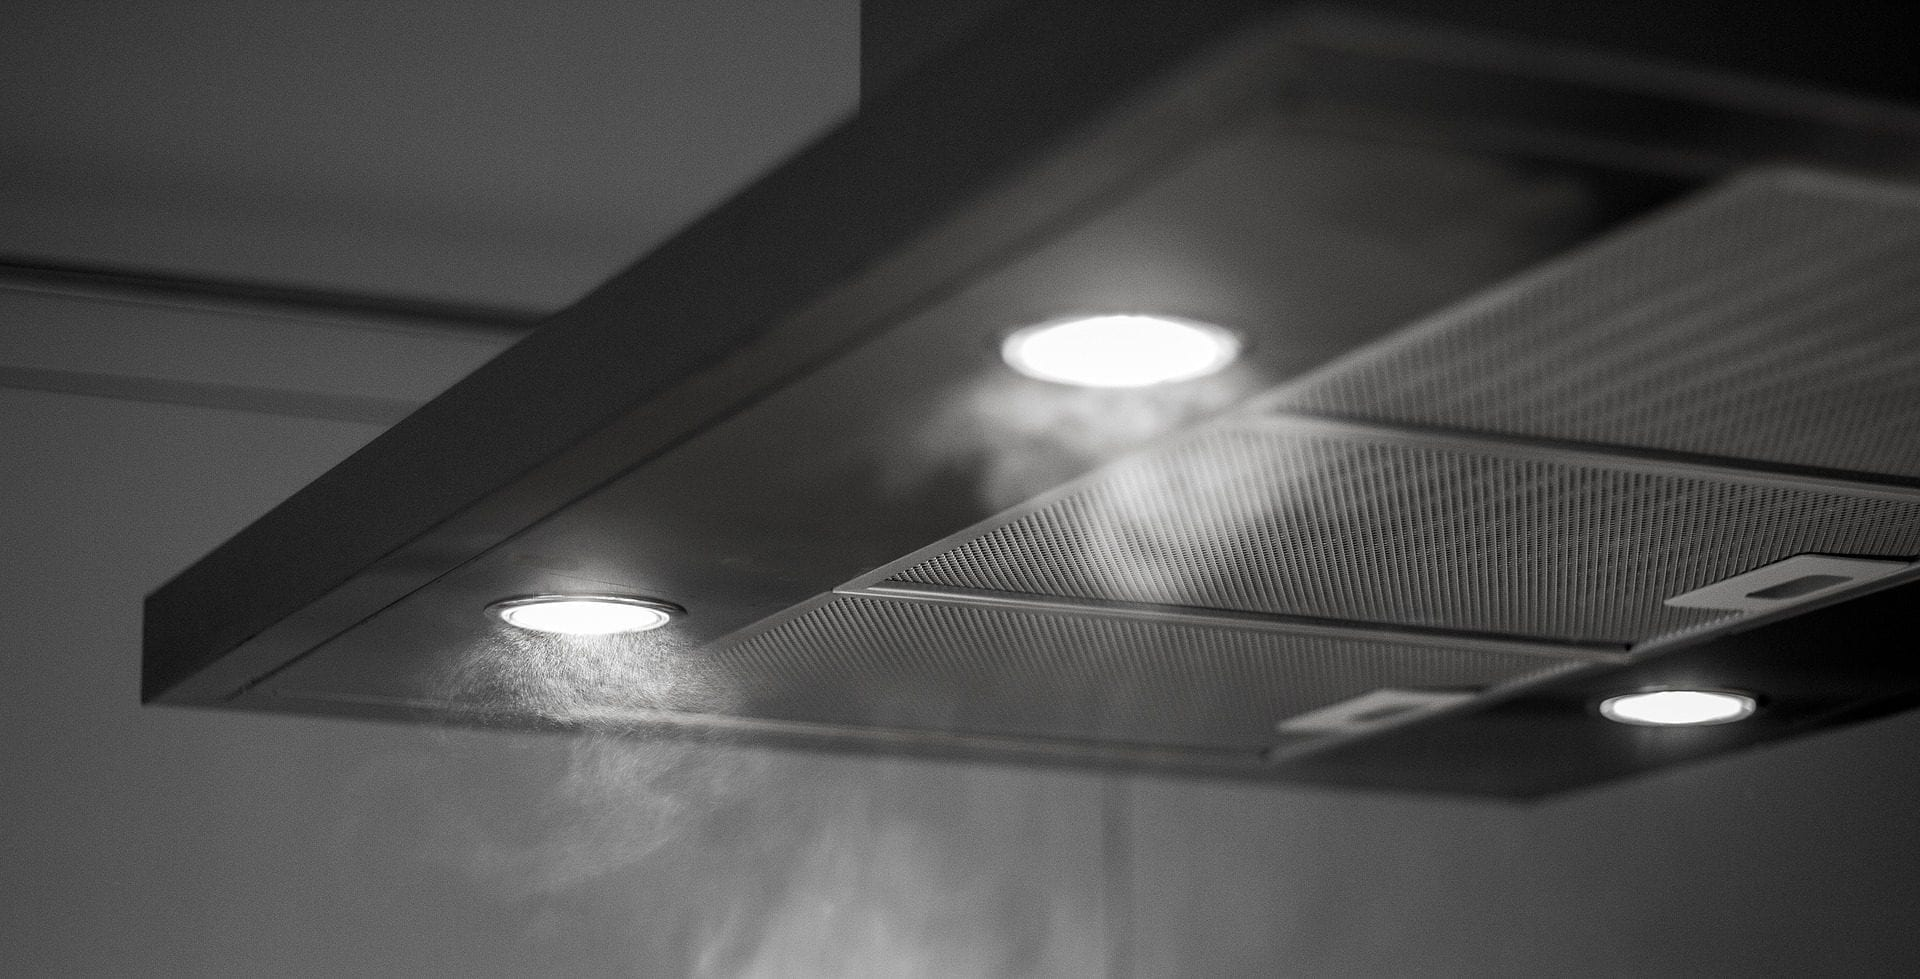 Black and white image of stove lighting in kitchen